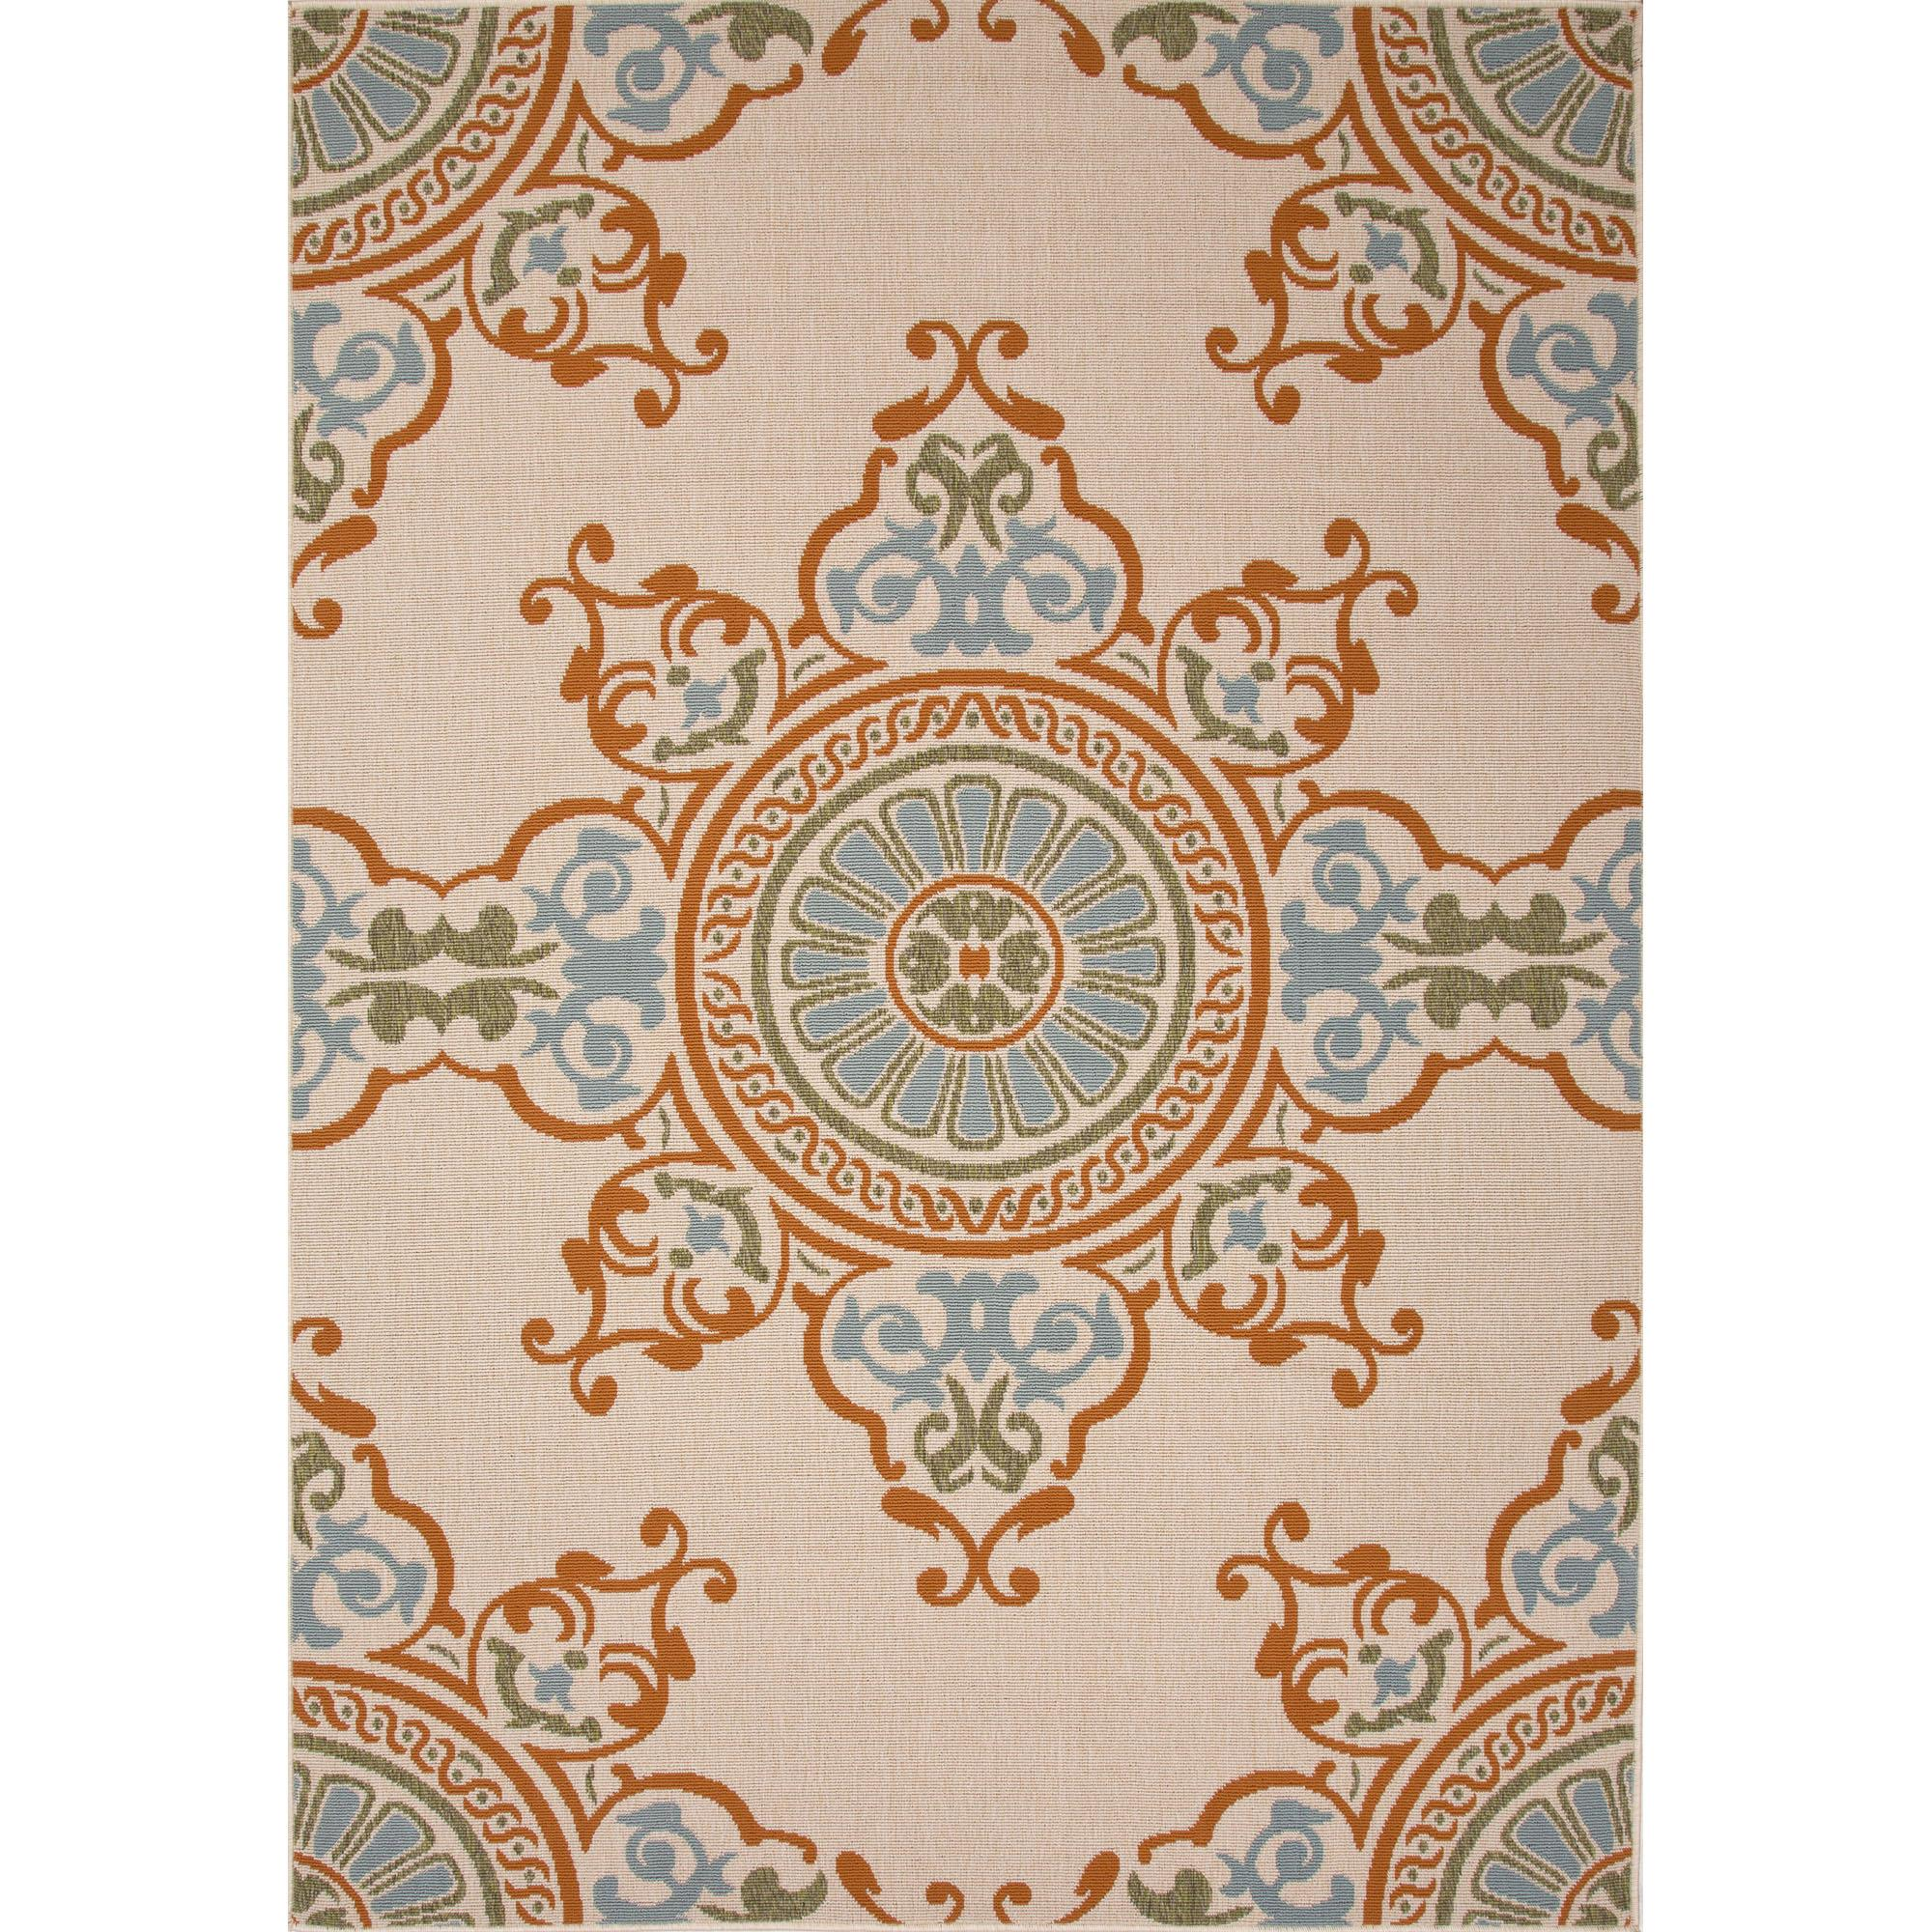 JAIPUR Rugs Bloom 4 x 5.3 Rug - Item Number: RUG121677